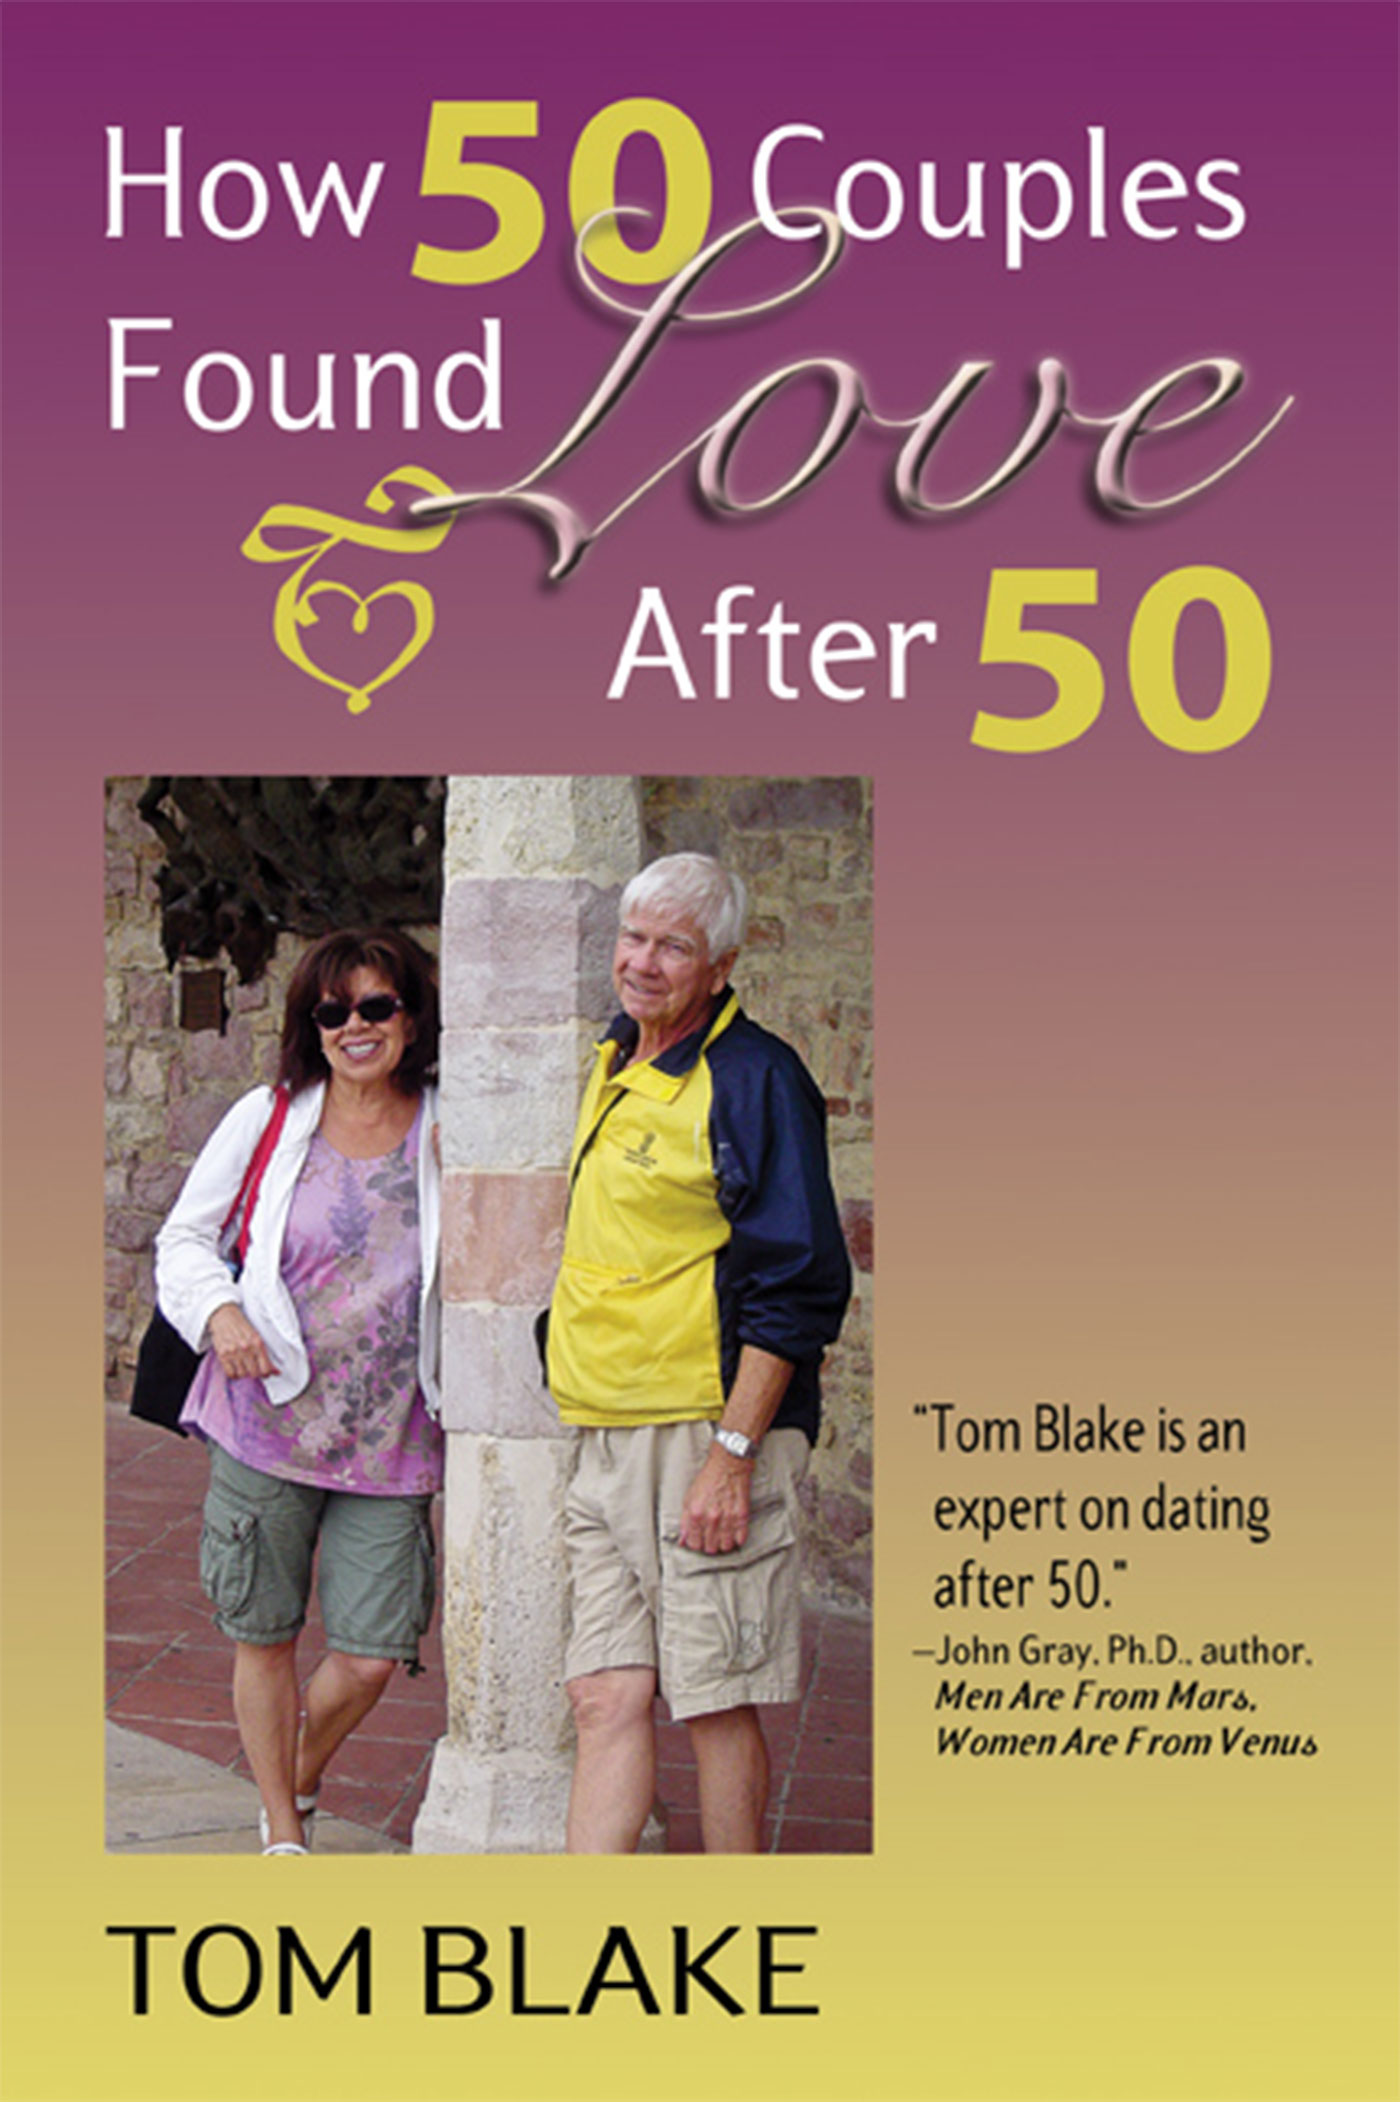 How 50 Couples Found Love After 50, an Ebook by Tom Blake